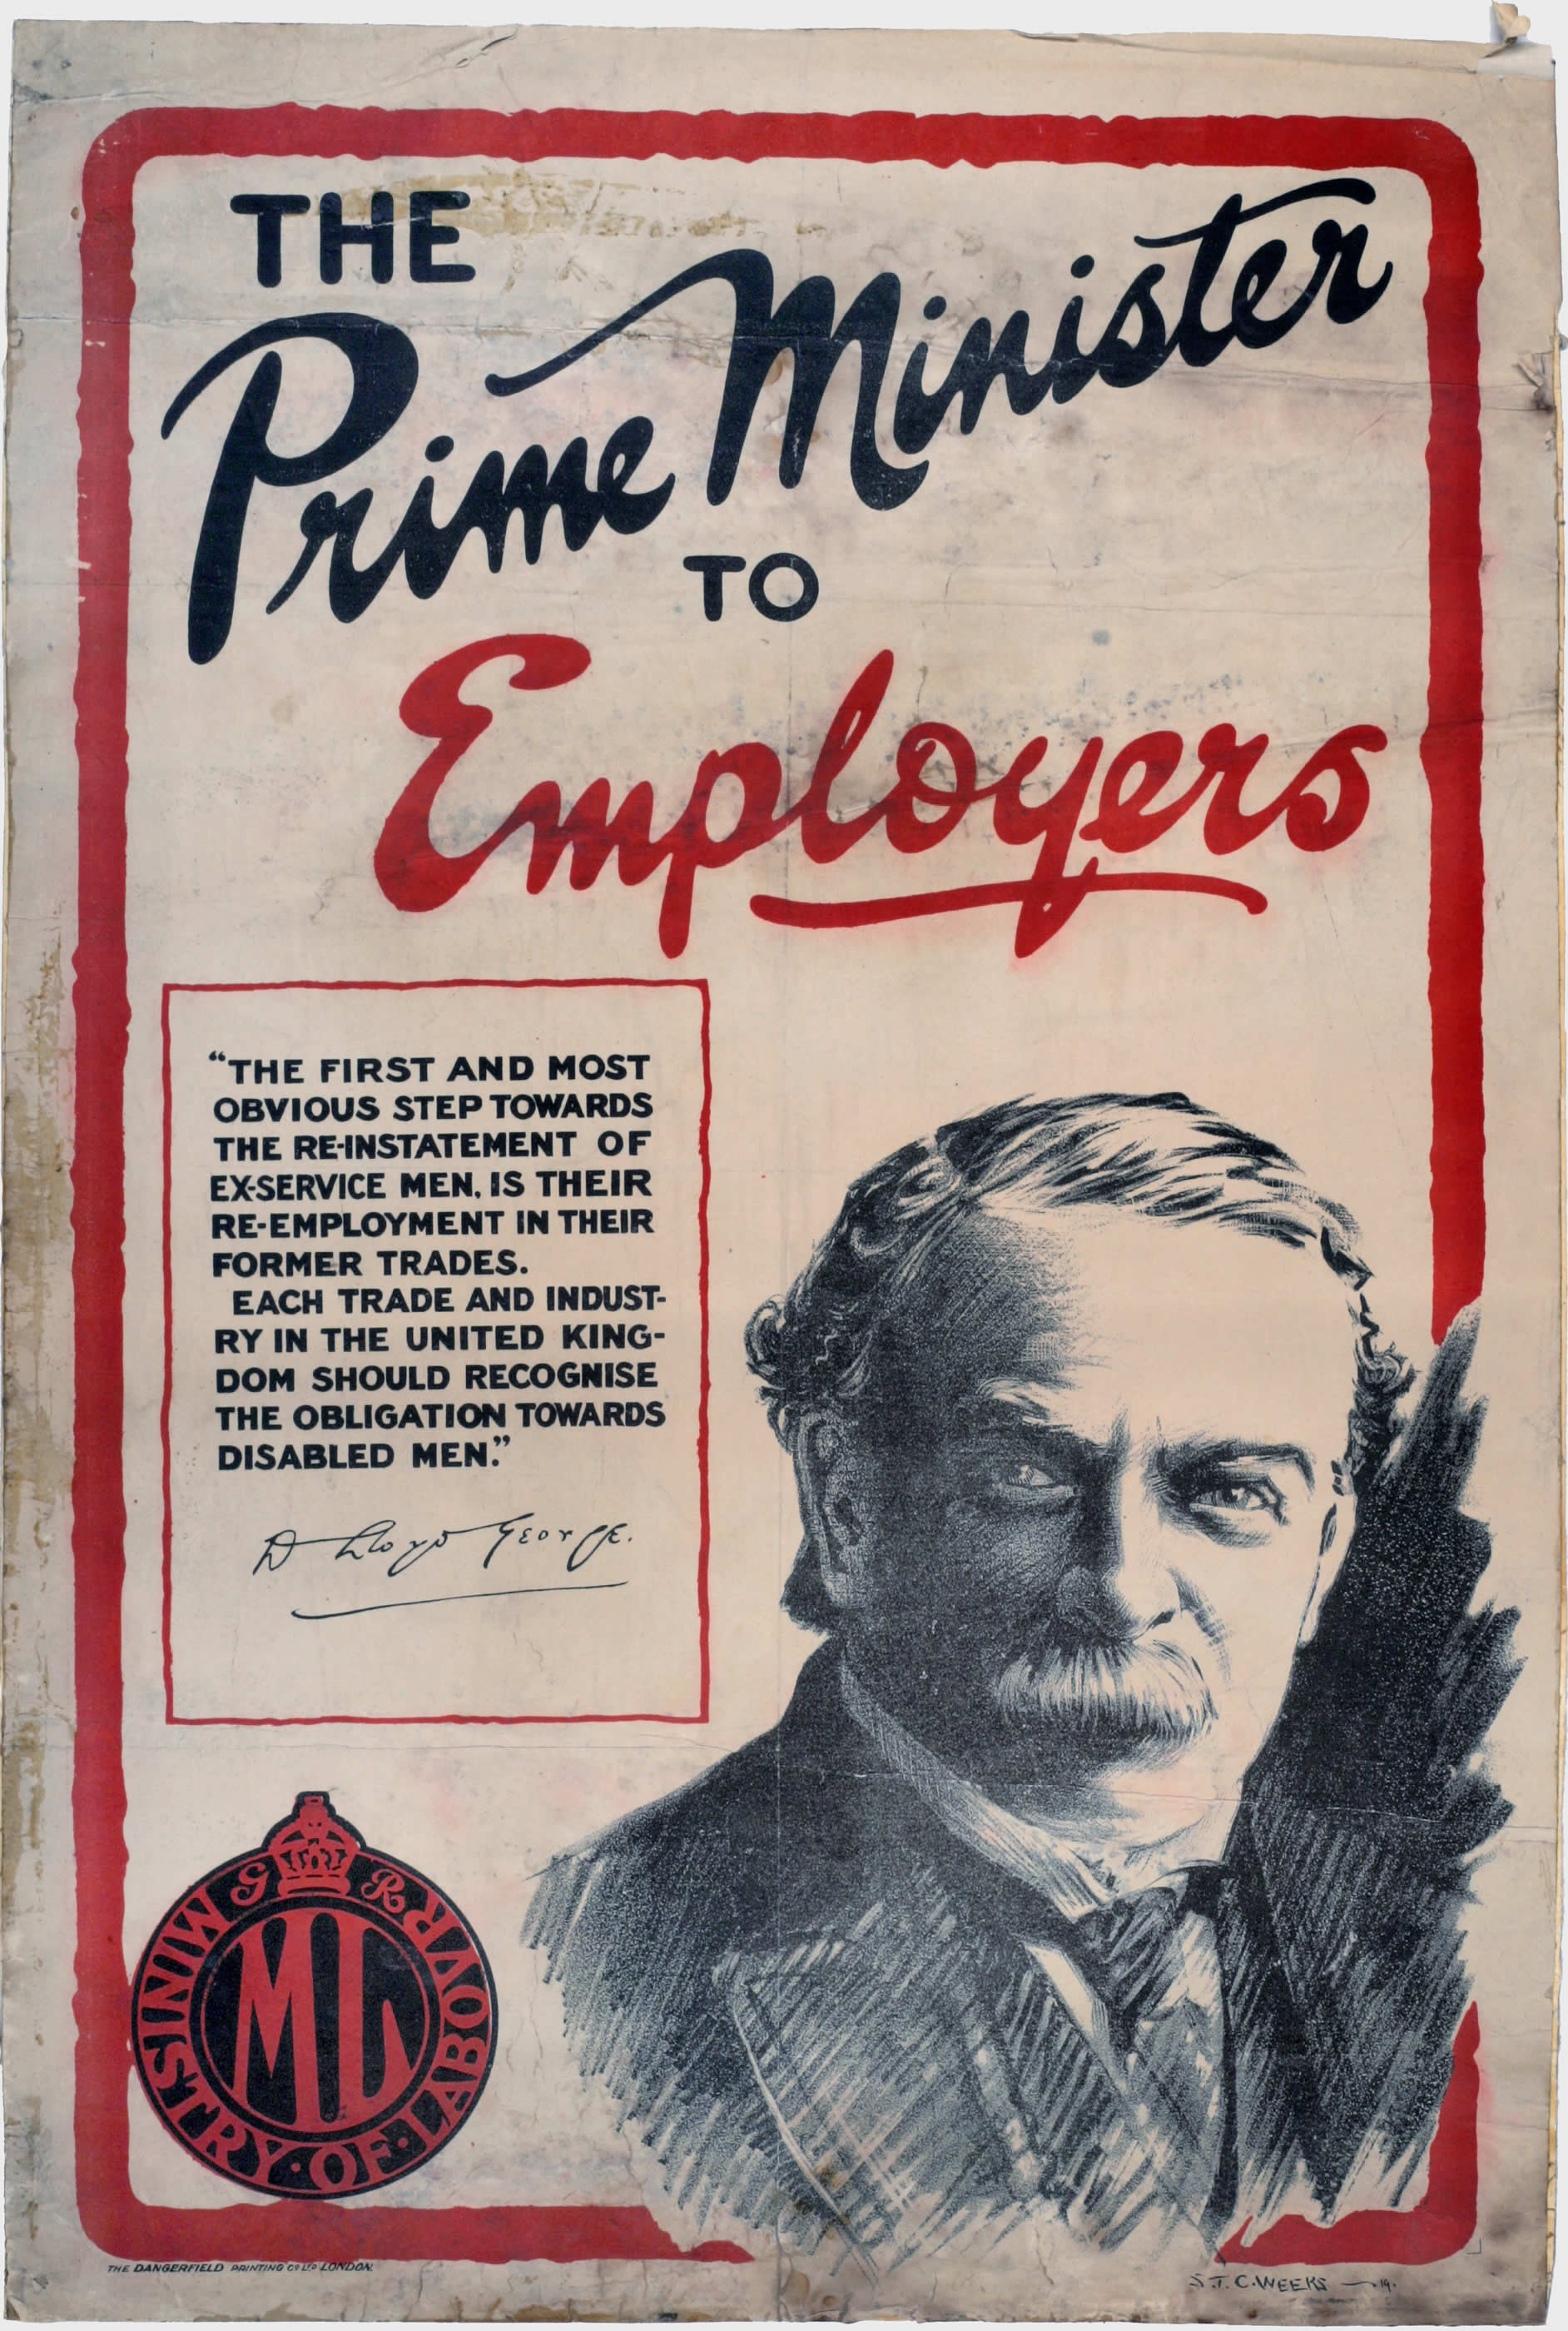 The Prime Minister to Employers